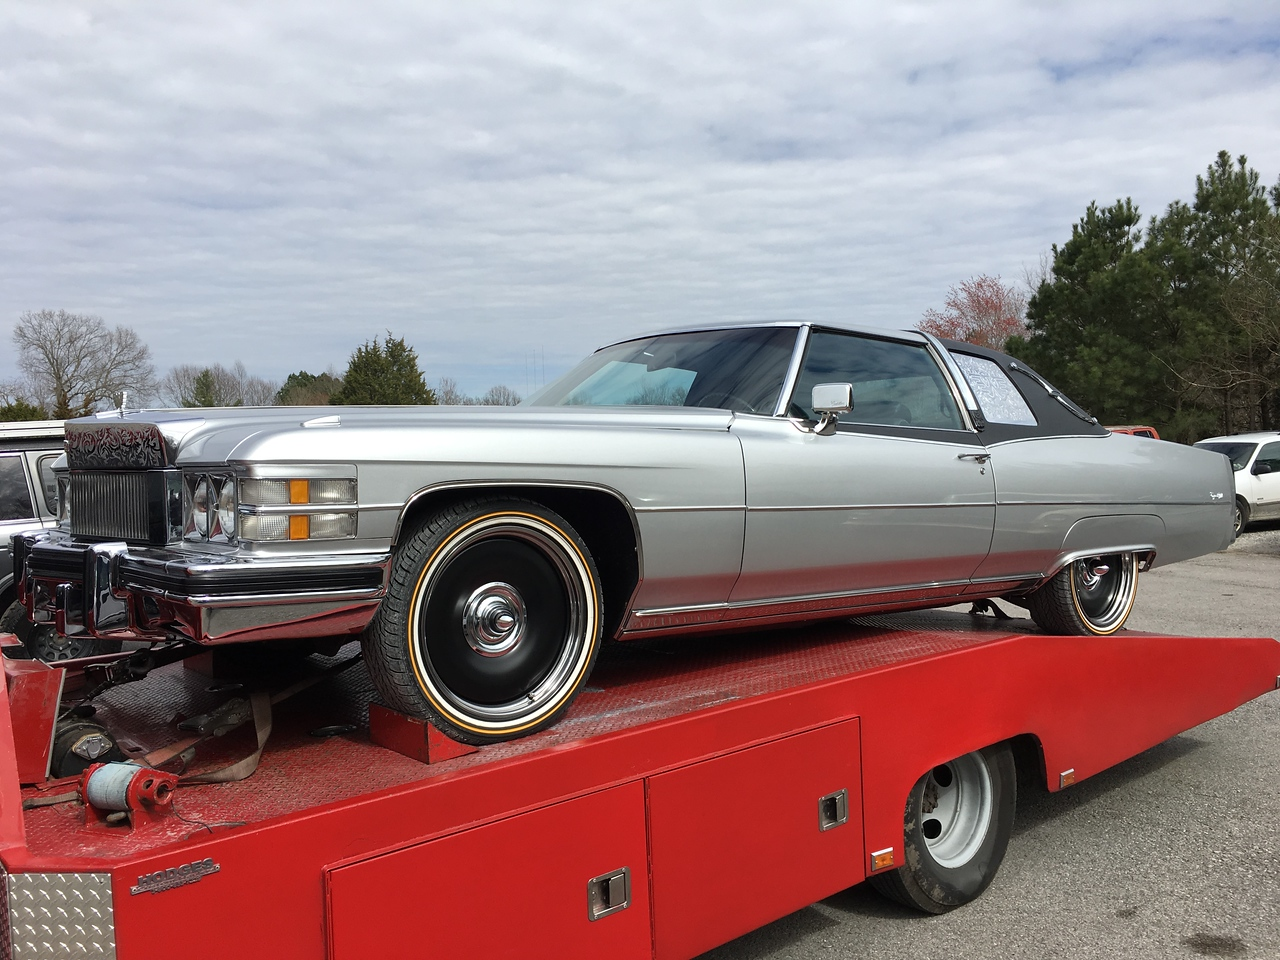 1974 Cadillac custom (Waylon Jennings) - Whites Creek, Tennessee to White Bluff, Tennessee)